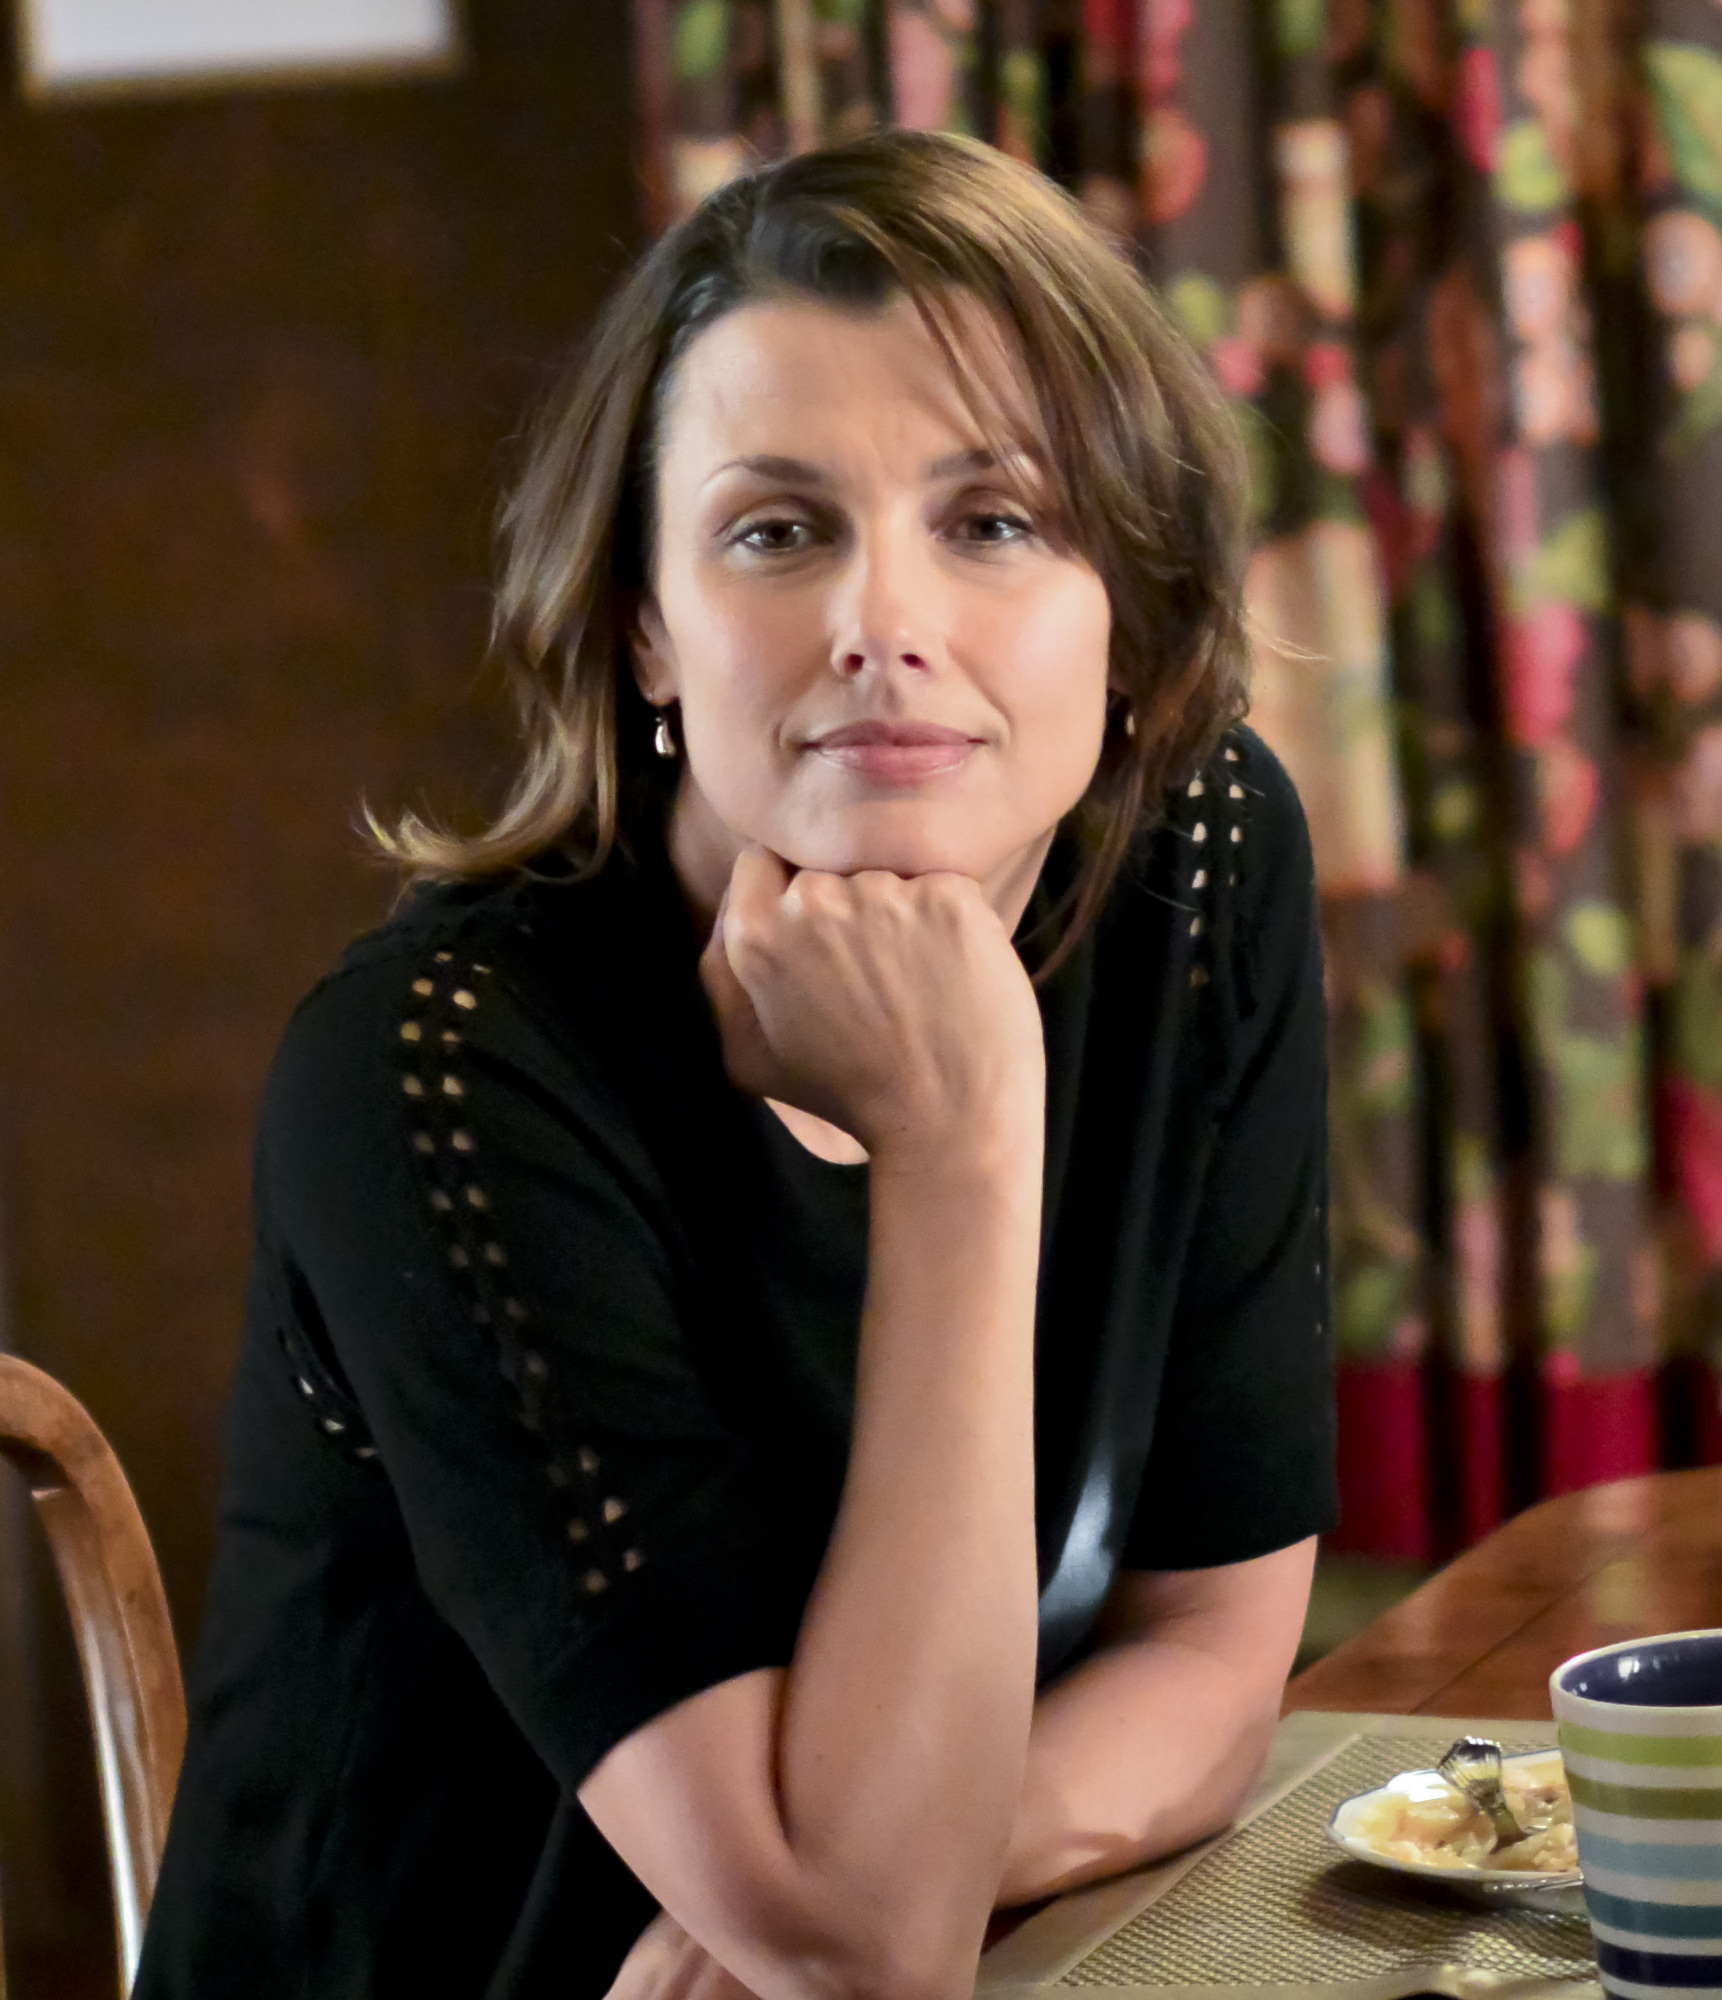 11. Bridget Moynahan first came to audience's attention in